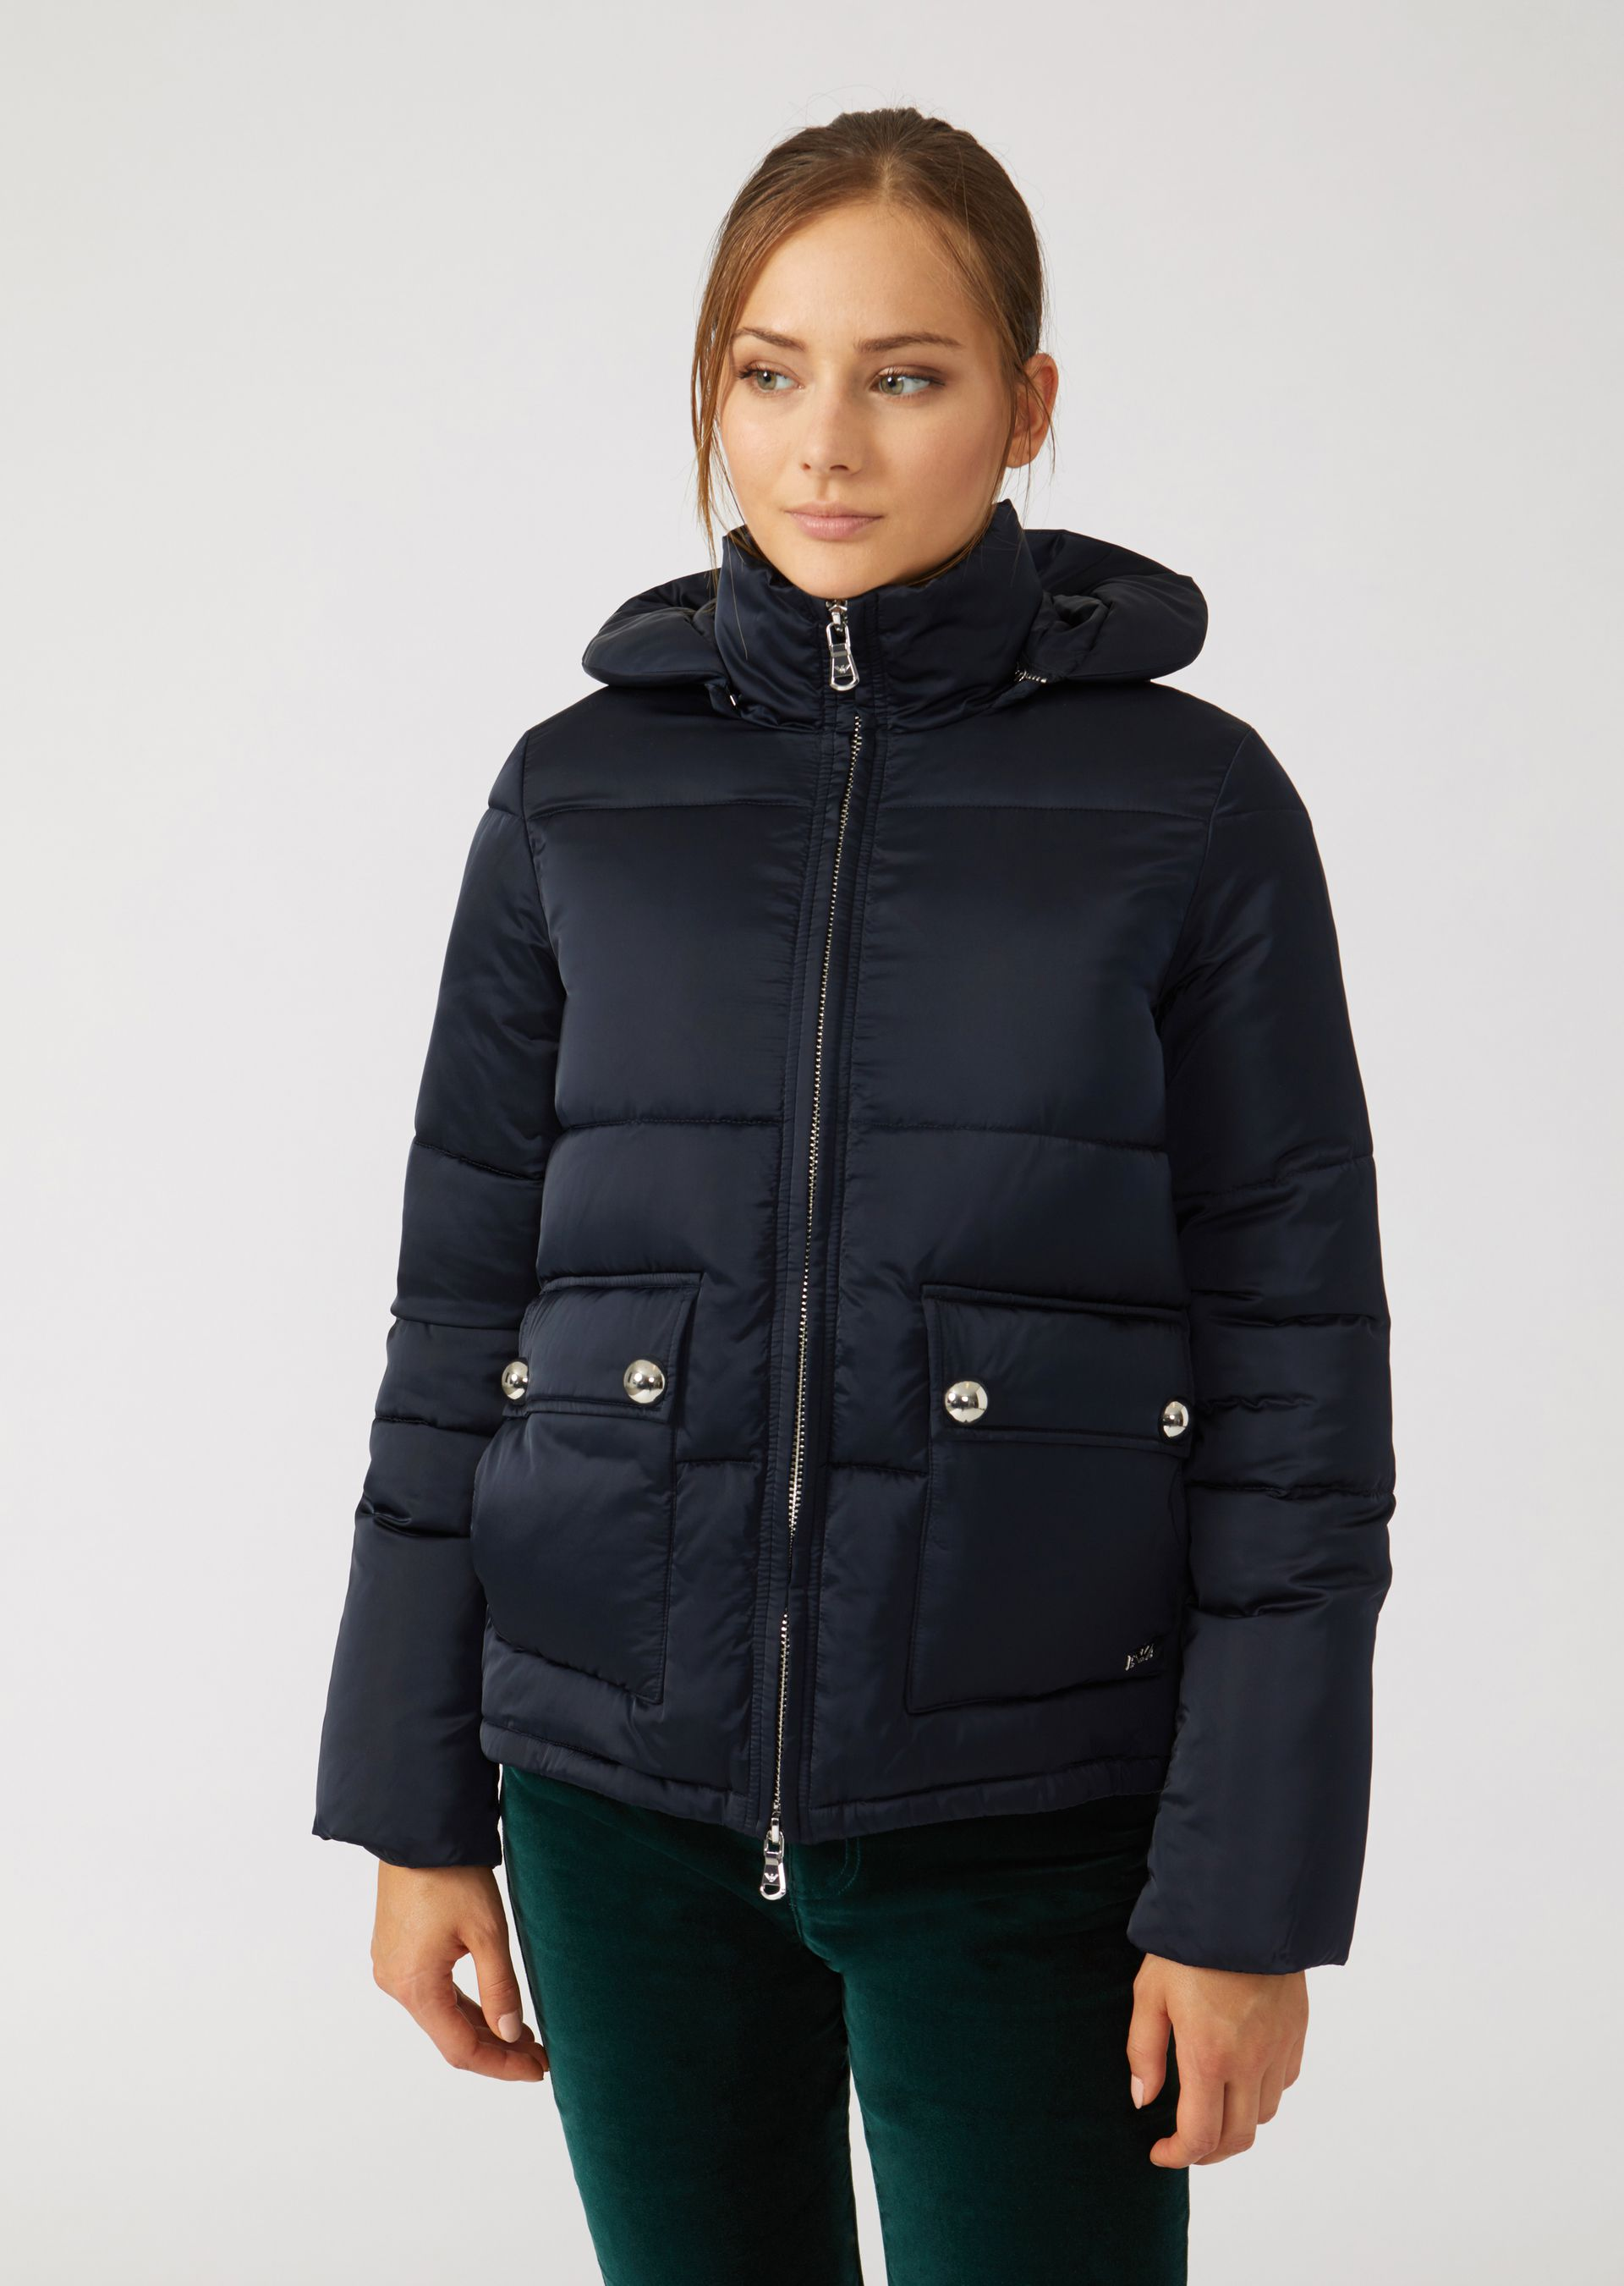 Down Jackets - Item 41843593, Navy Blue from ARMANI.COM